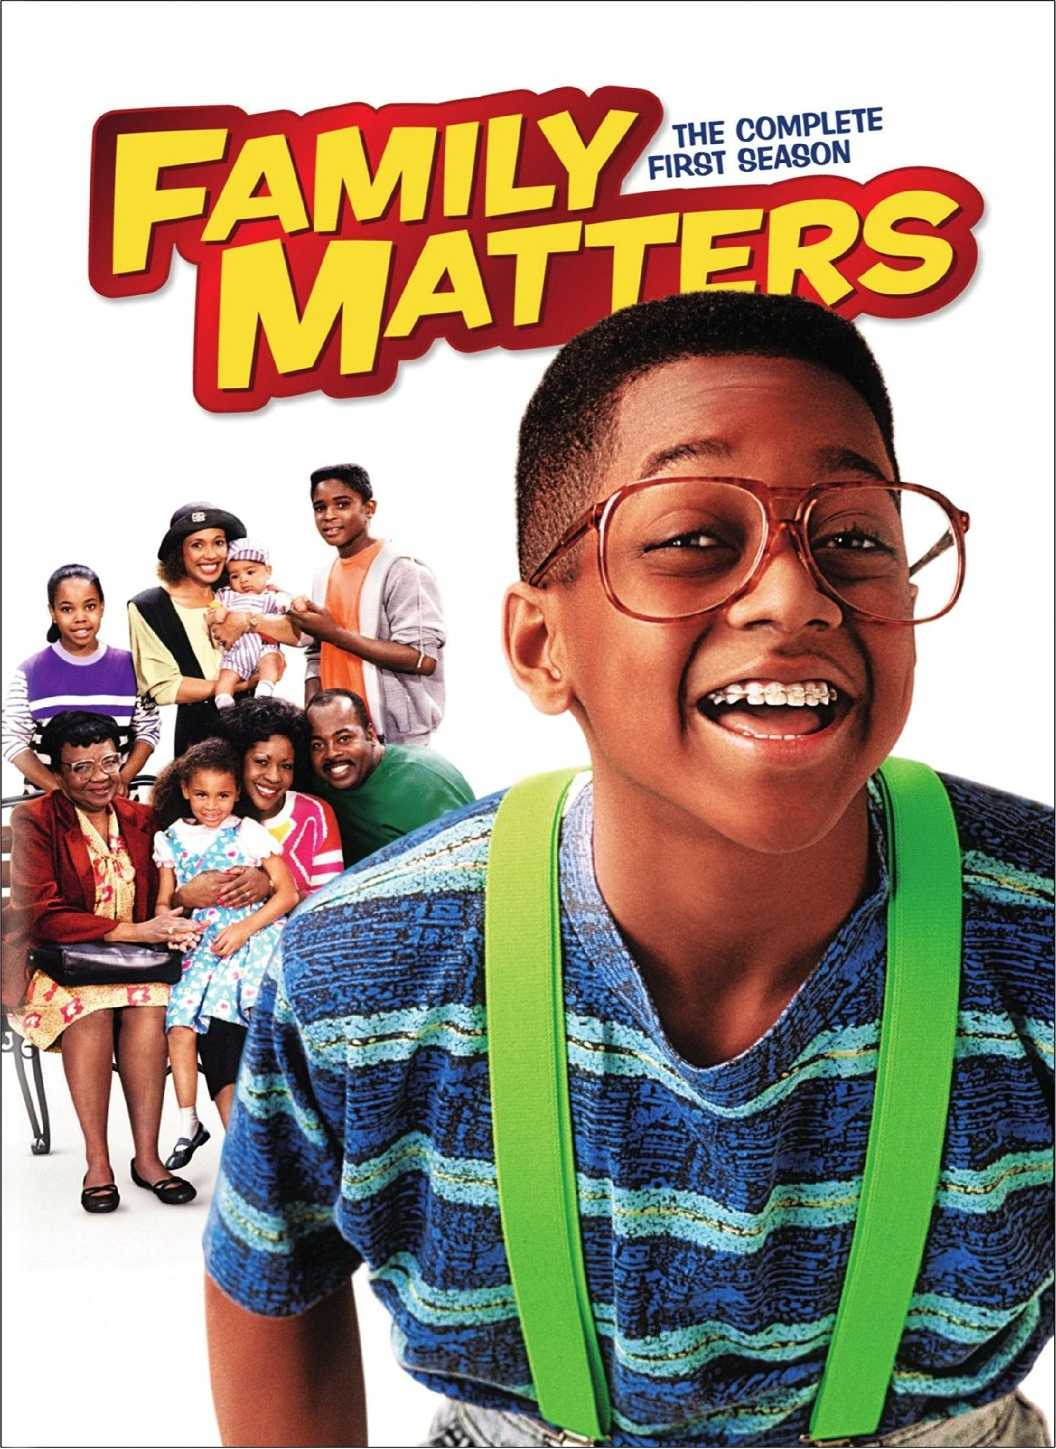 Family Matters Complete Season 1 Megauploadagoracombr